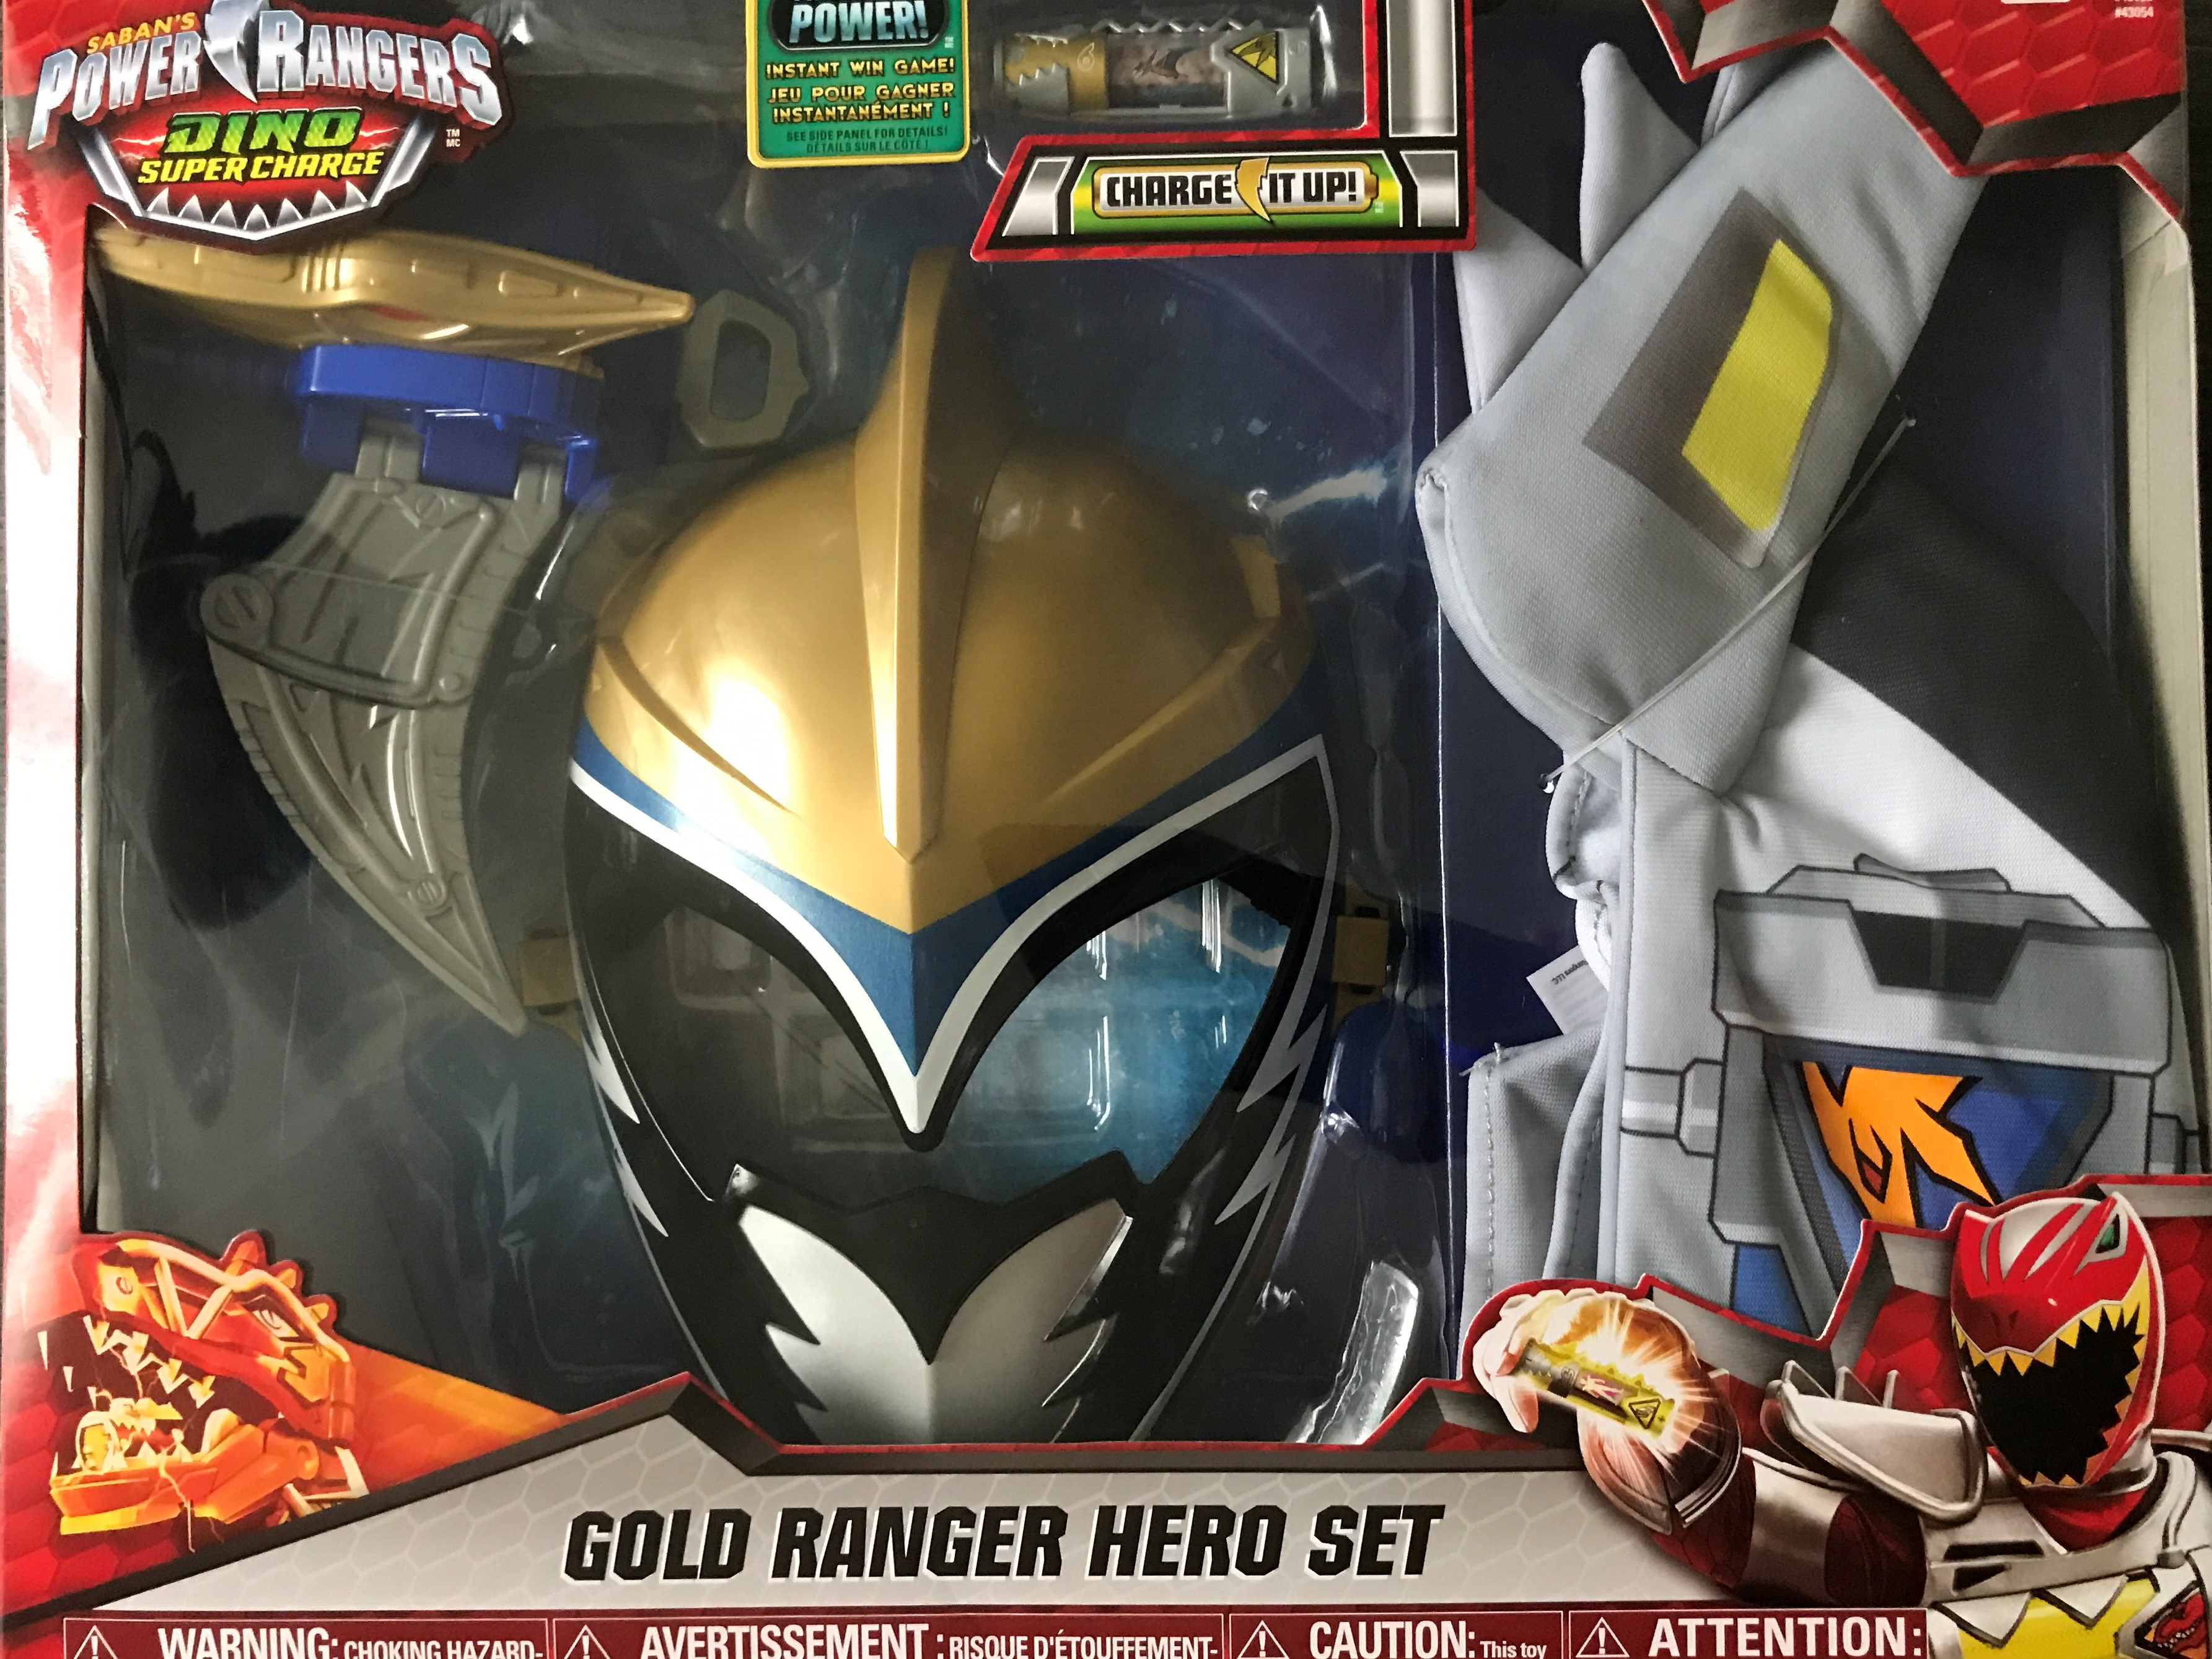 Power Rangers Dino Super Charge Gold Ranger Hero Set Roleplay Toy